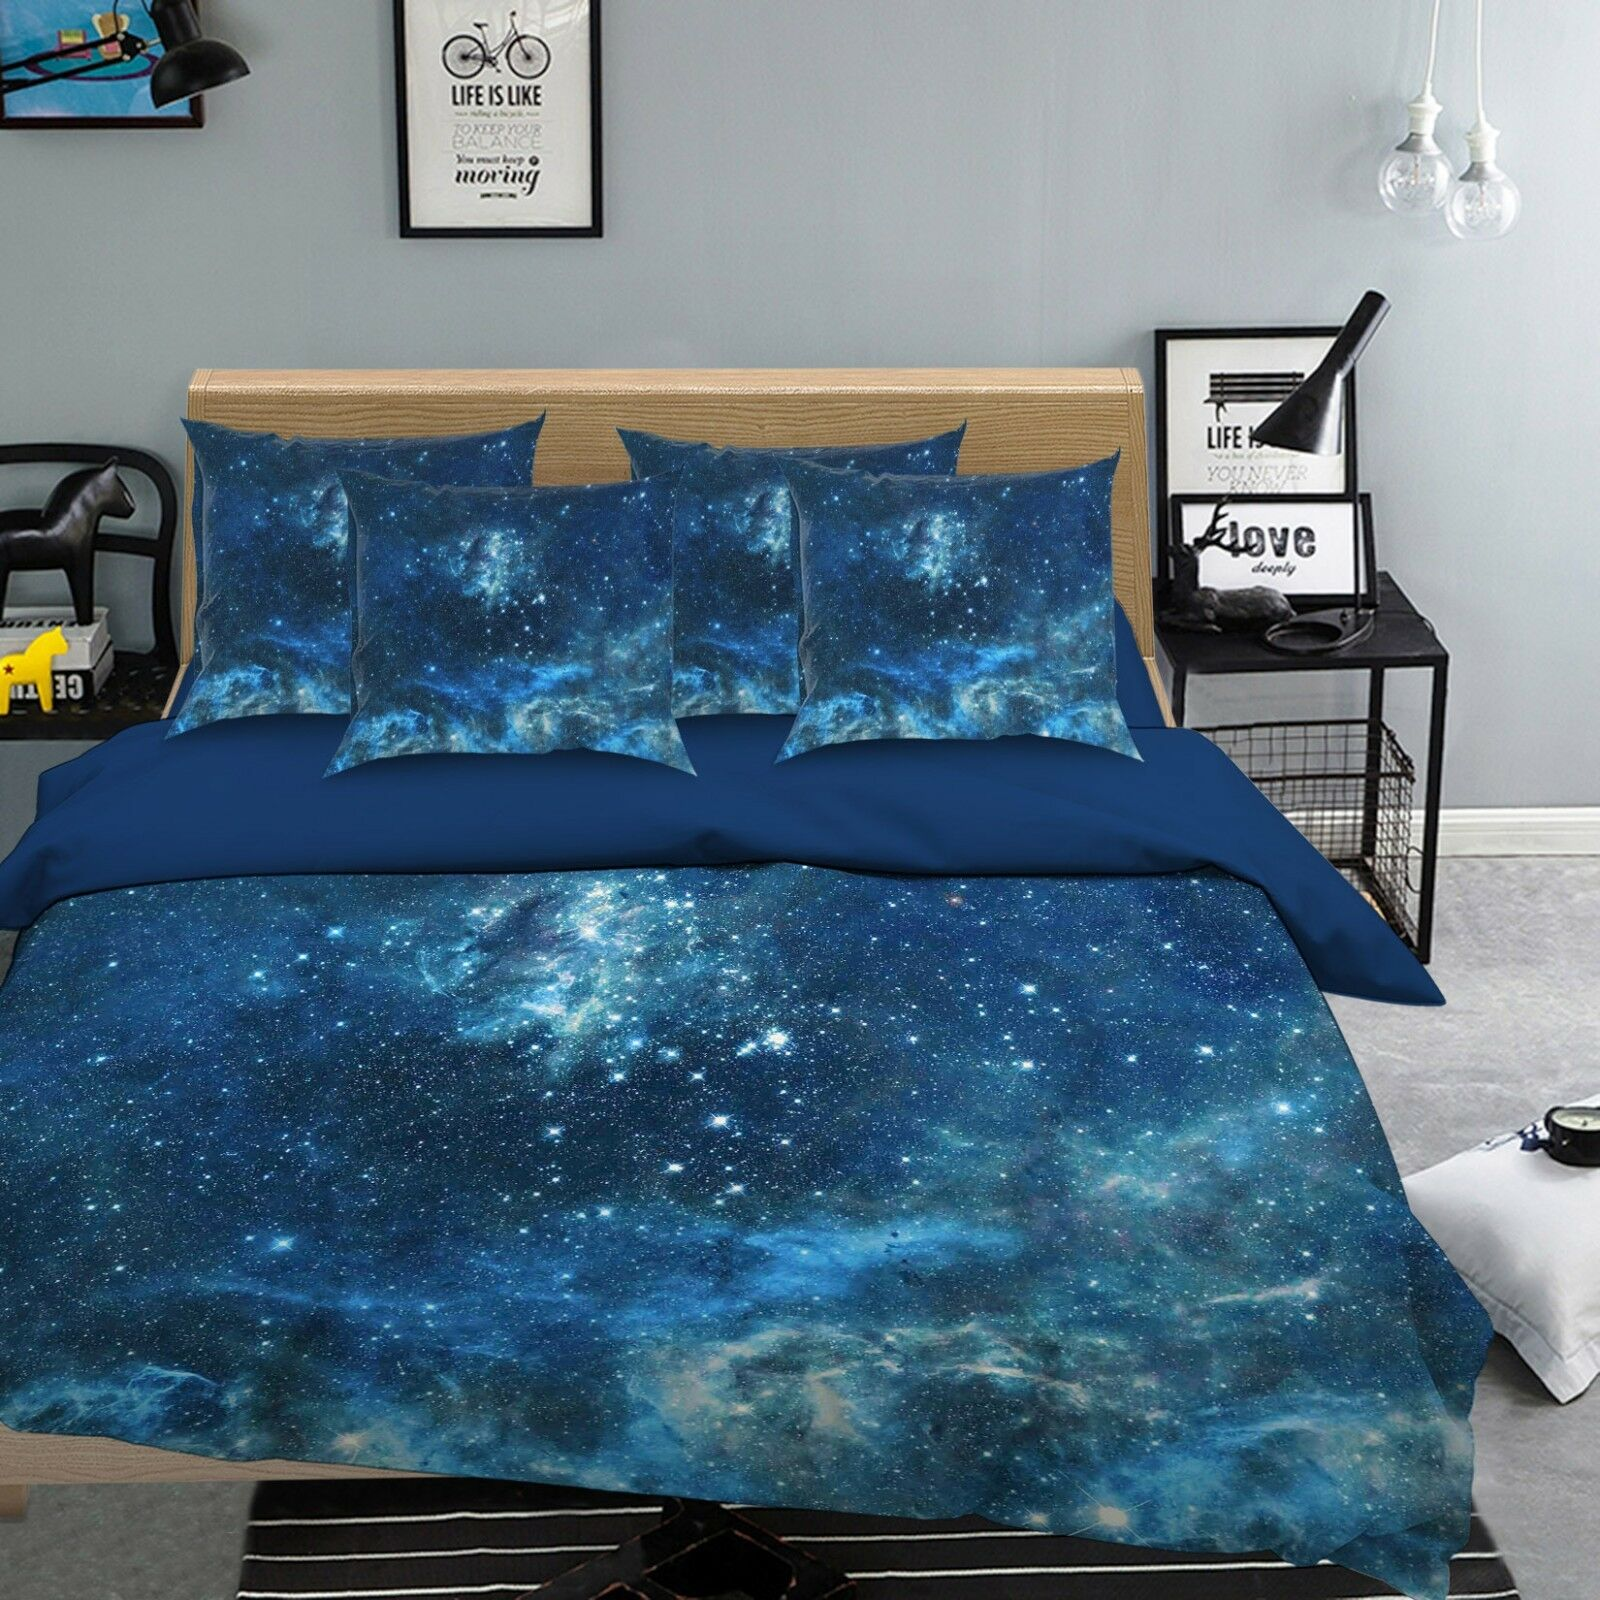 3D Starry Sky 58 Bed Pillowcases Quilt Duvet Cover Set Single Queen King AU Cobb